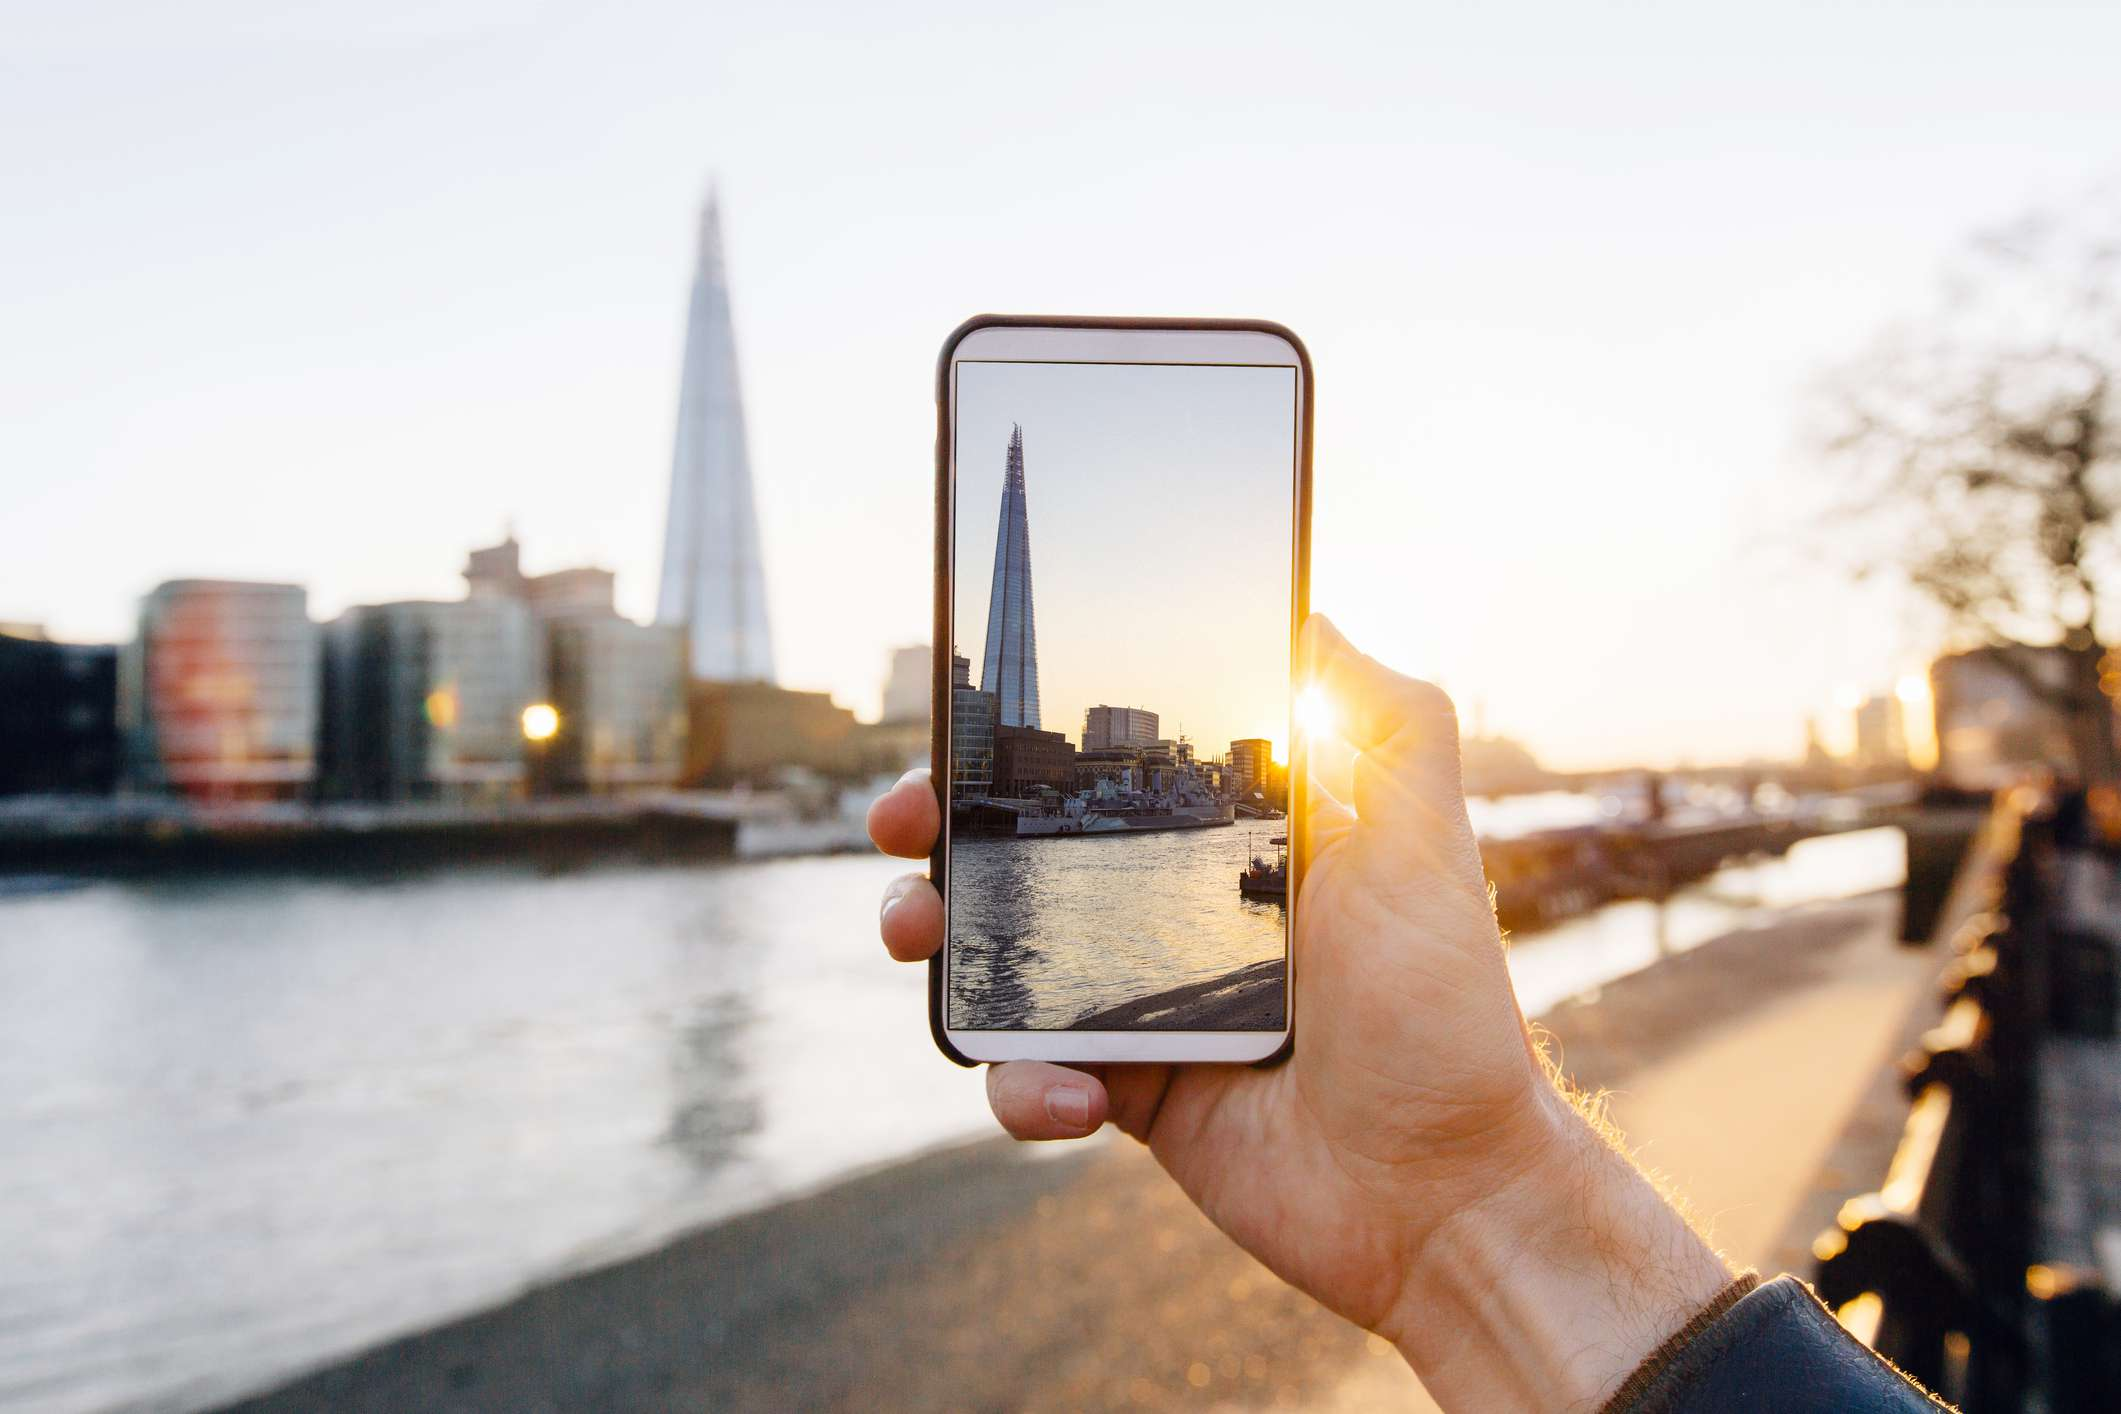 Someone taking pictures of the London skyline at sunset with a smart phone.